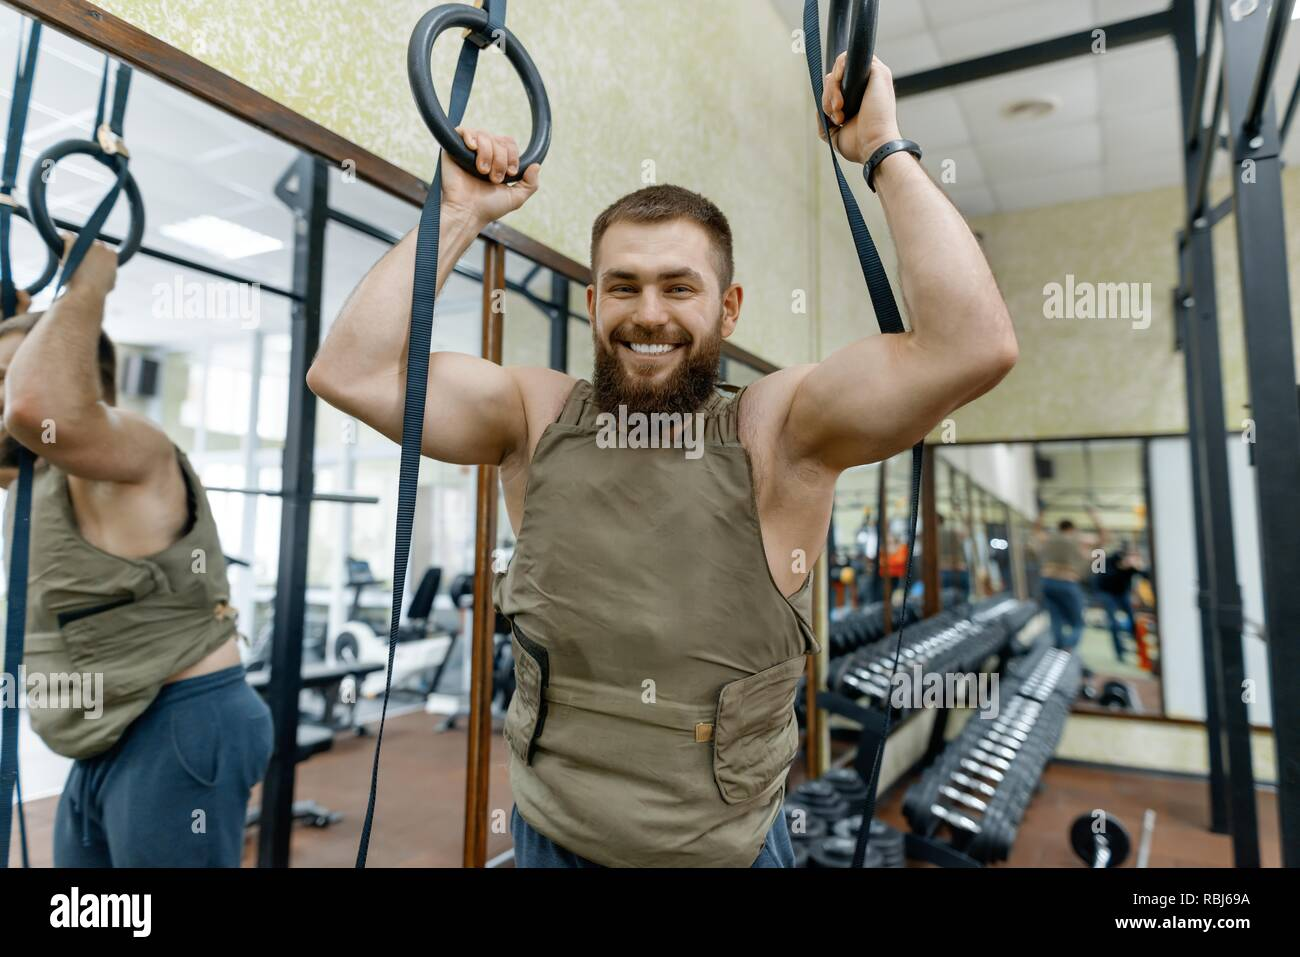 Portrait muscular caucasian bearded man dressed in weighted vest in the gym, military style. - Stock Image